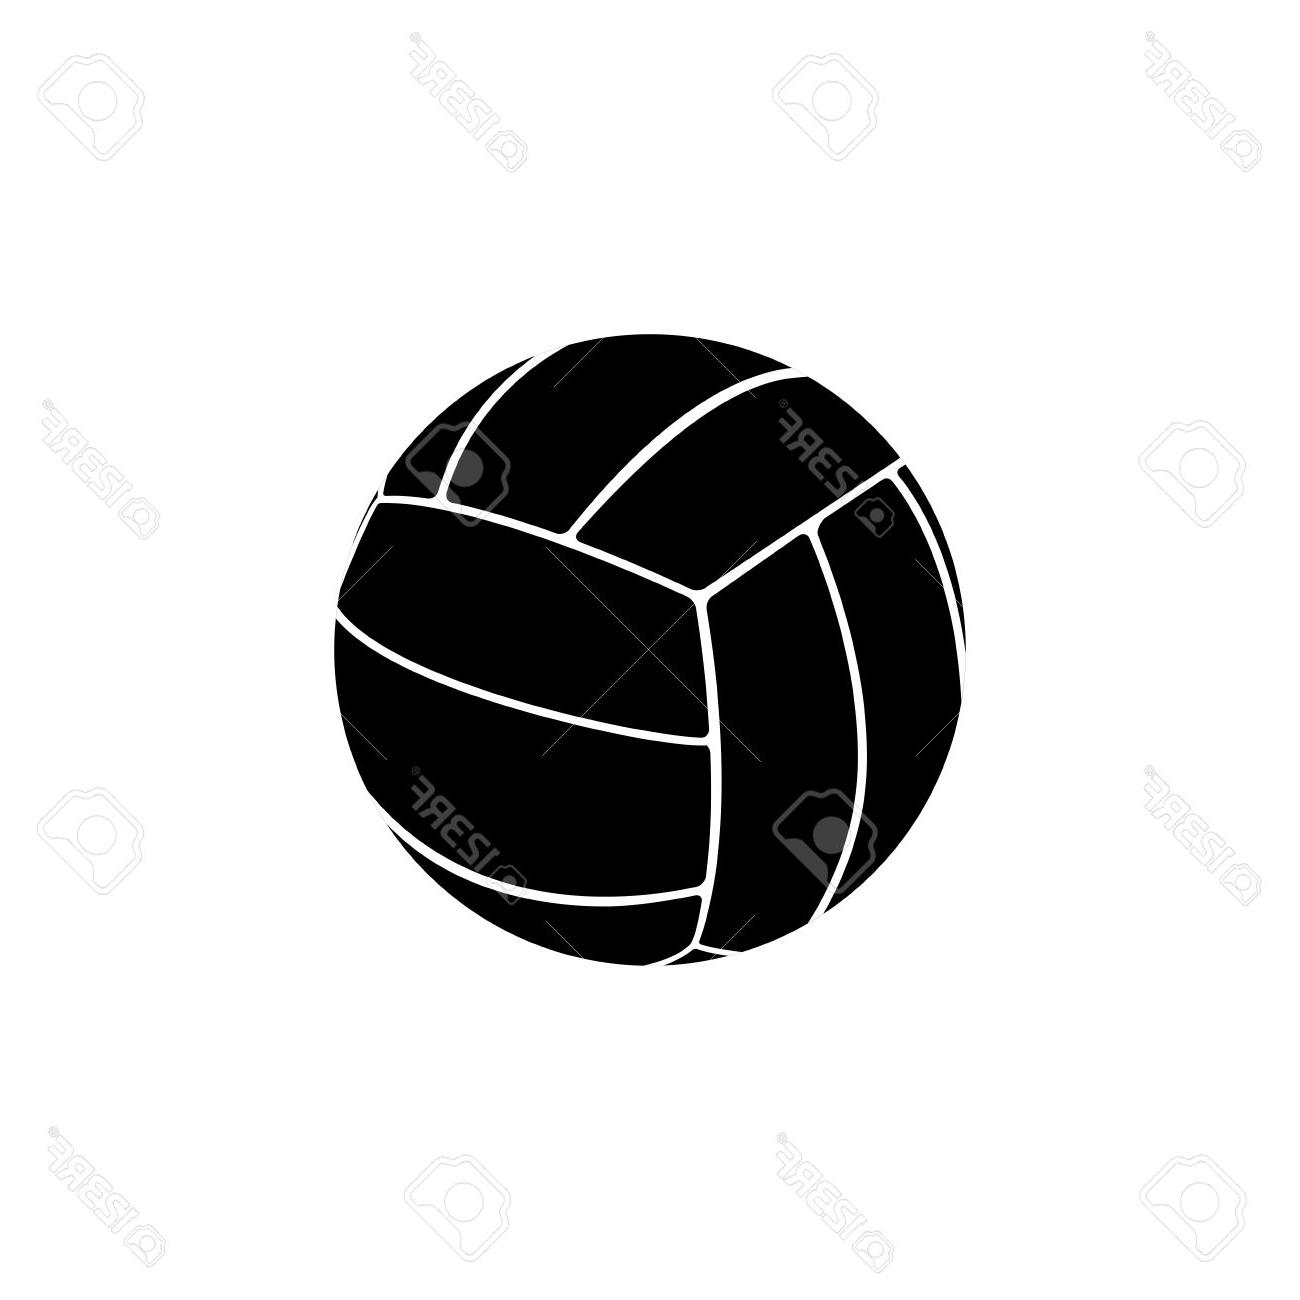 1300x1300 Best Abstract Volleyball Ball Silhouette On White Background Stock